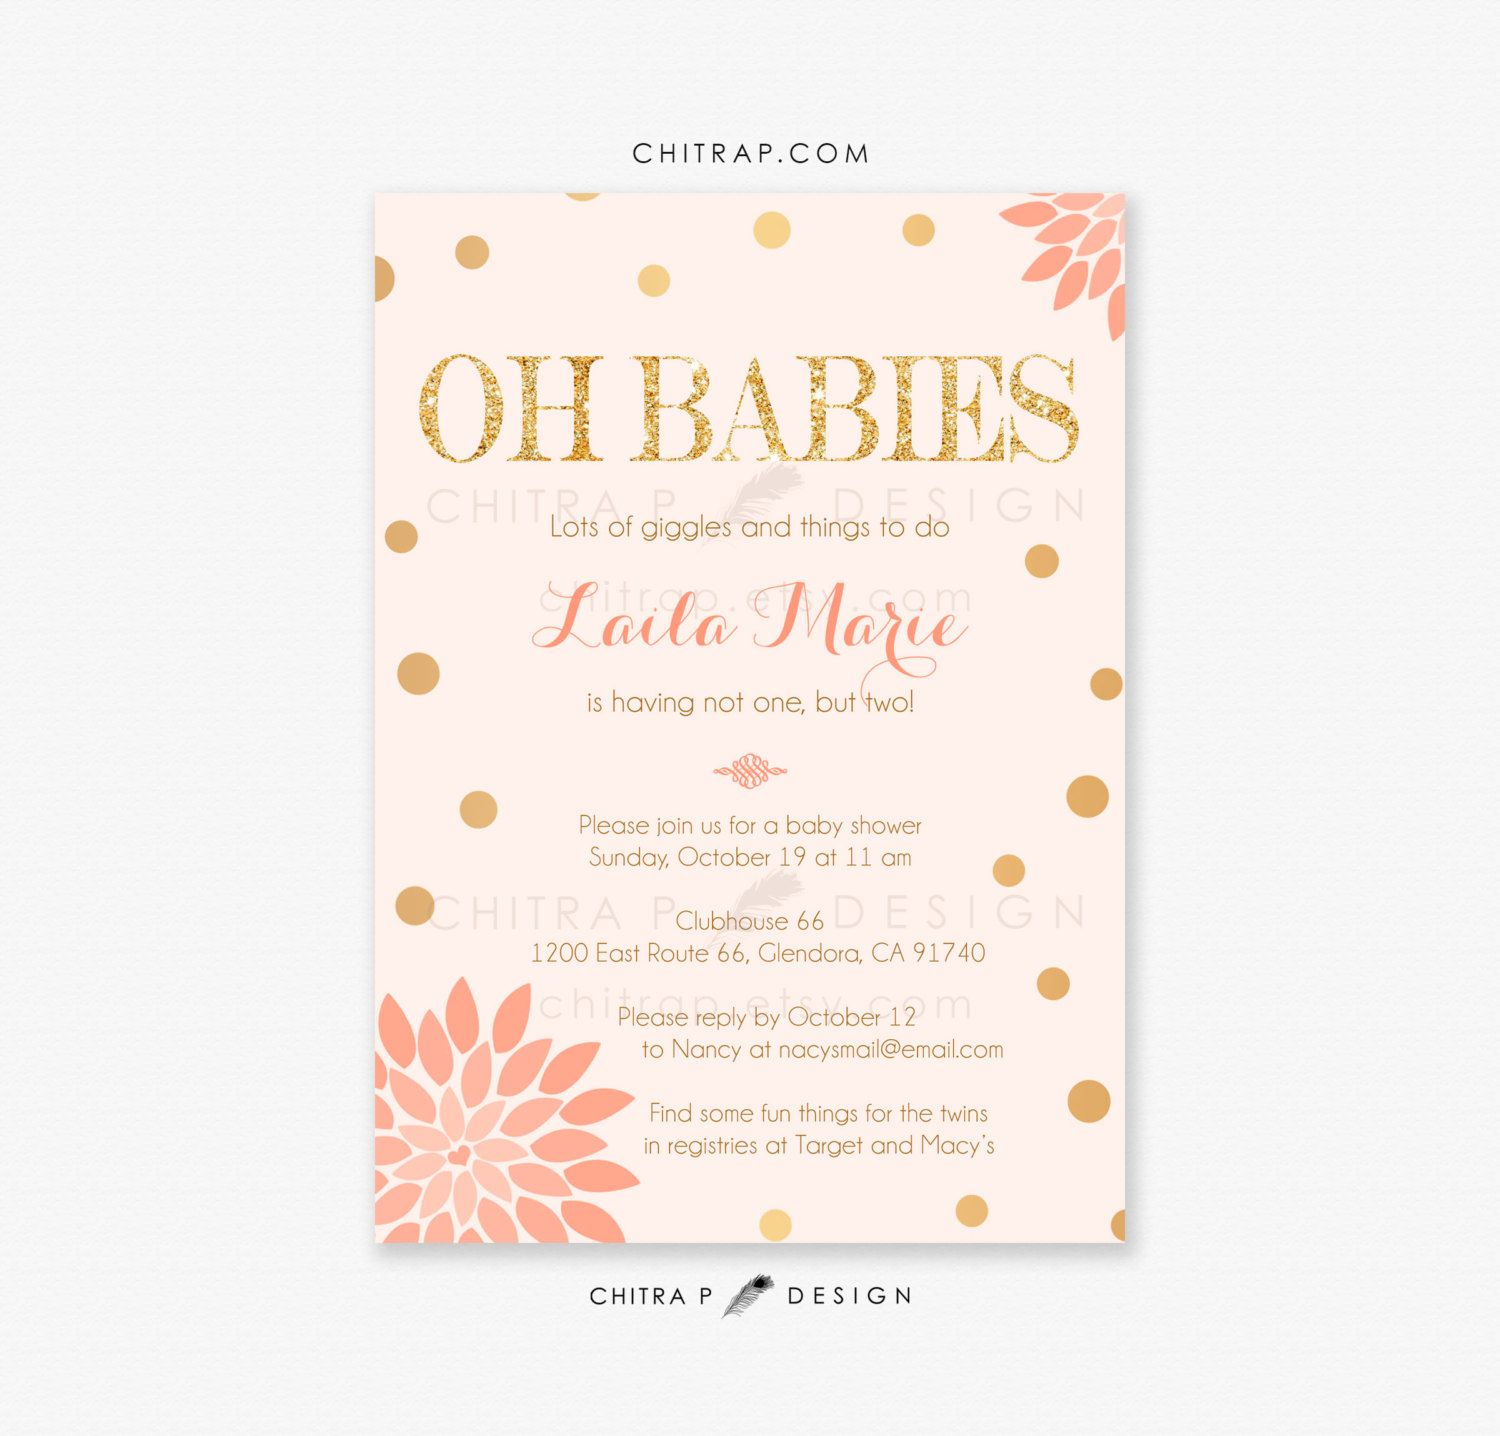 Twin Girls Baby Shower Invitations - Printed, Blush Pink Gold ...